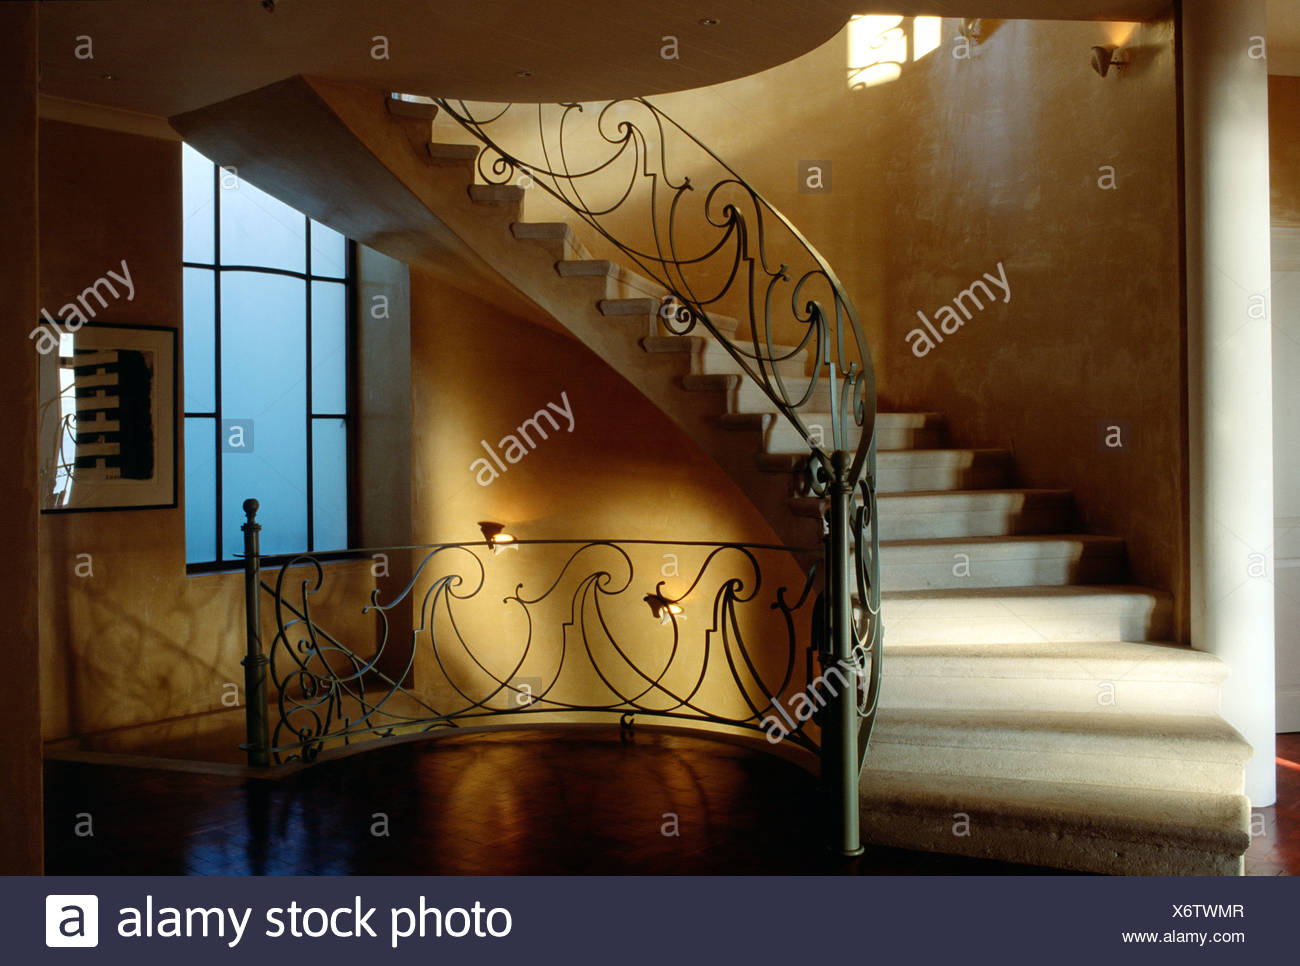 Curved Staircase Wrought Iron Railing, Dark Yellow Walls, Landing Between  Two Floors Tall Window